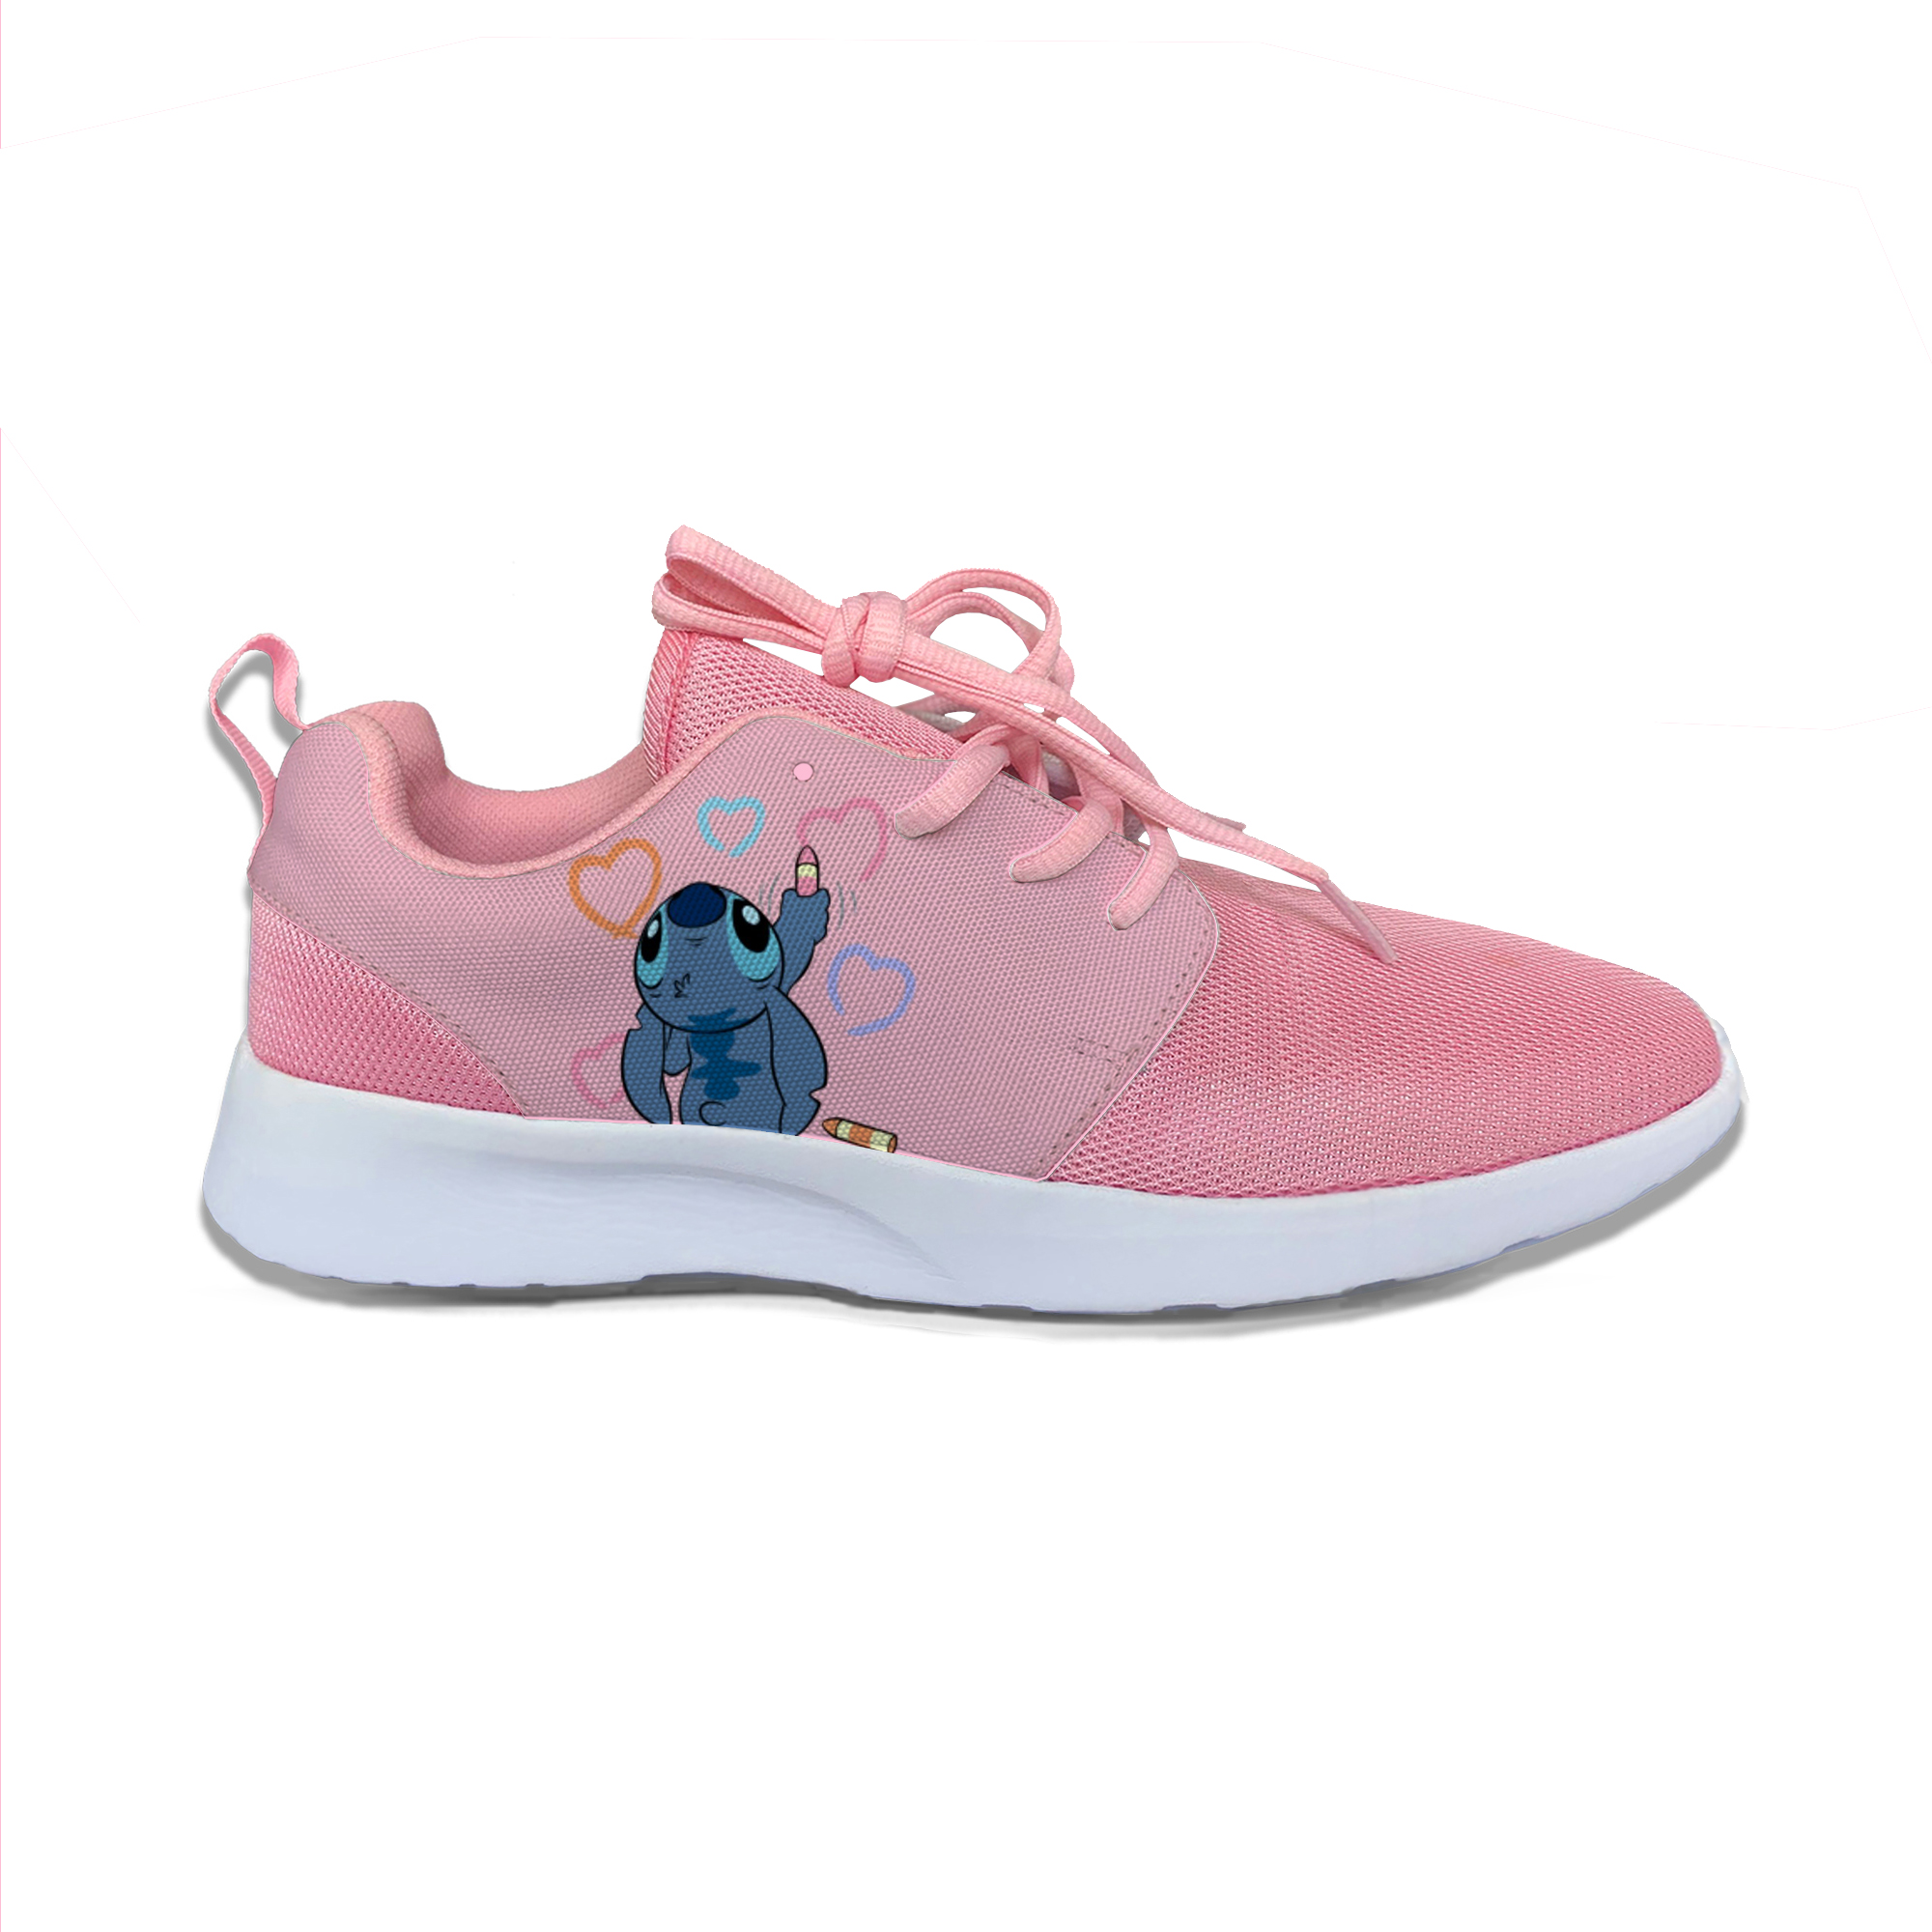 Lilo Stitch Angel Funny Cute Cartoon Vogue Sport Running Shoes Lightweight Breathable 3D Printed Girl Women Female Mesh Sneakers